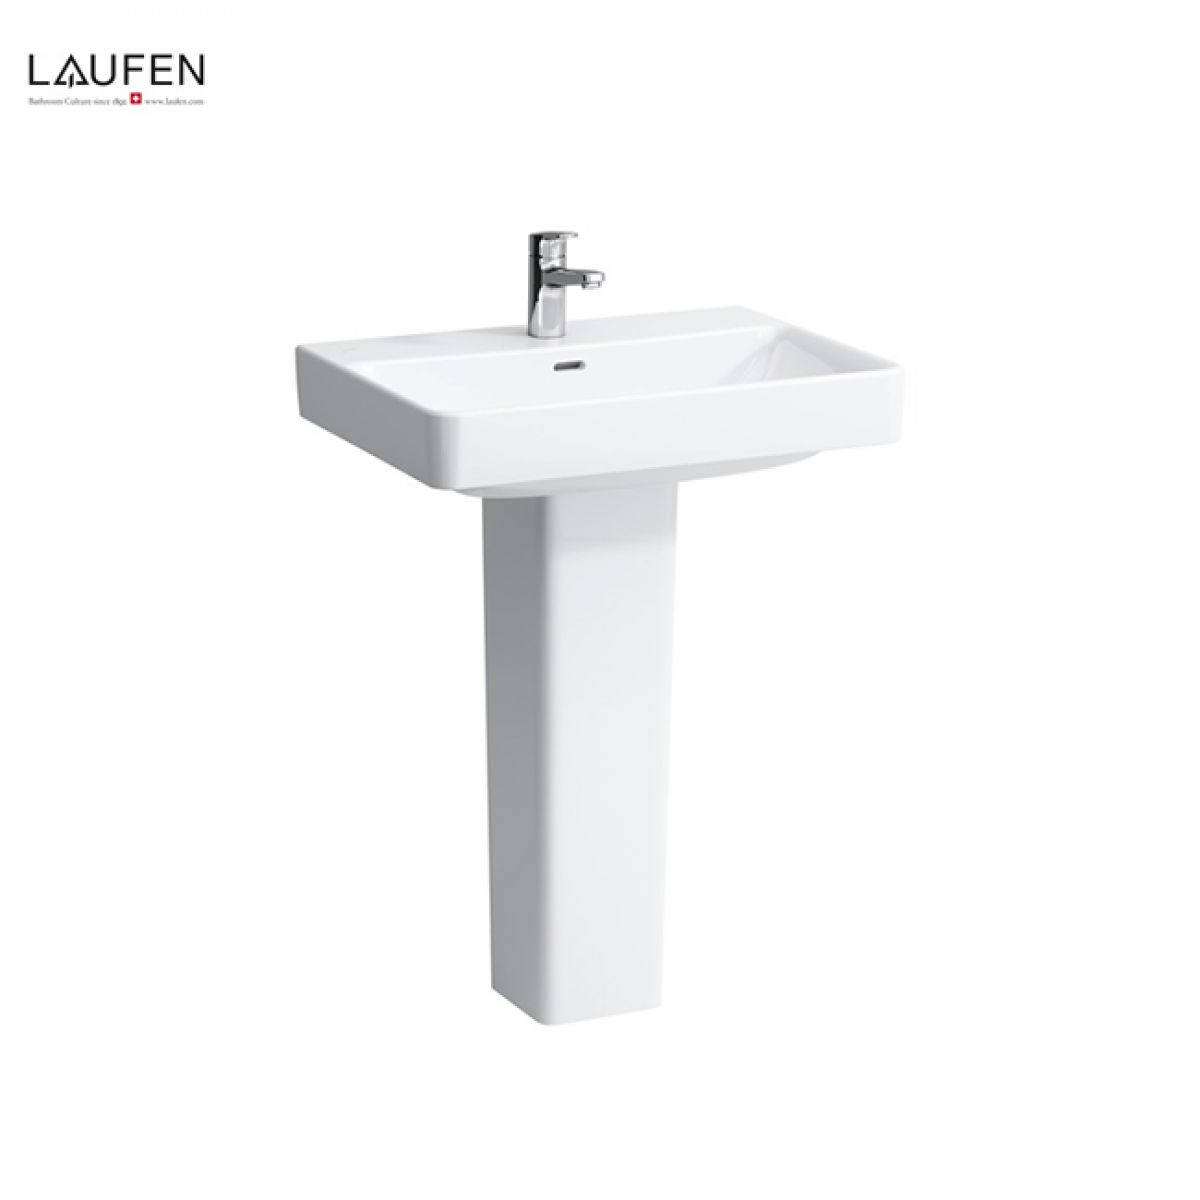 laufen pro s bathroom basin uk bathrooms. Black Bedroom Furniture Sets. Home Design Ideas